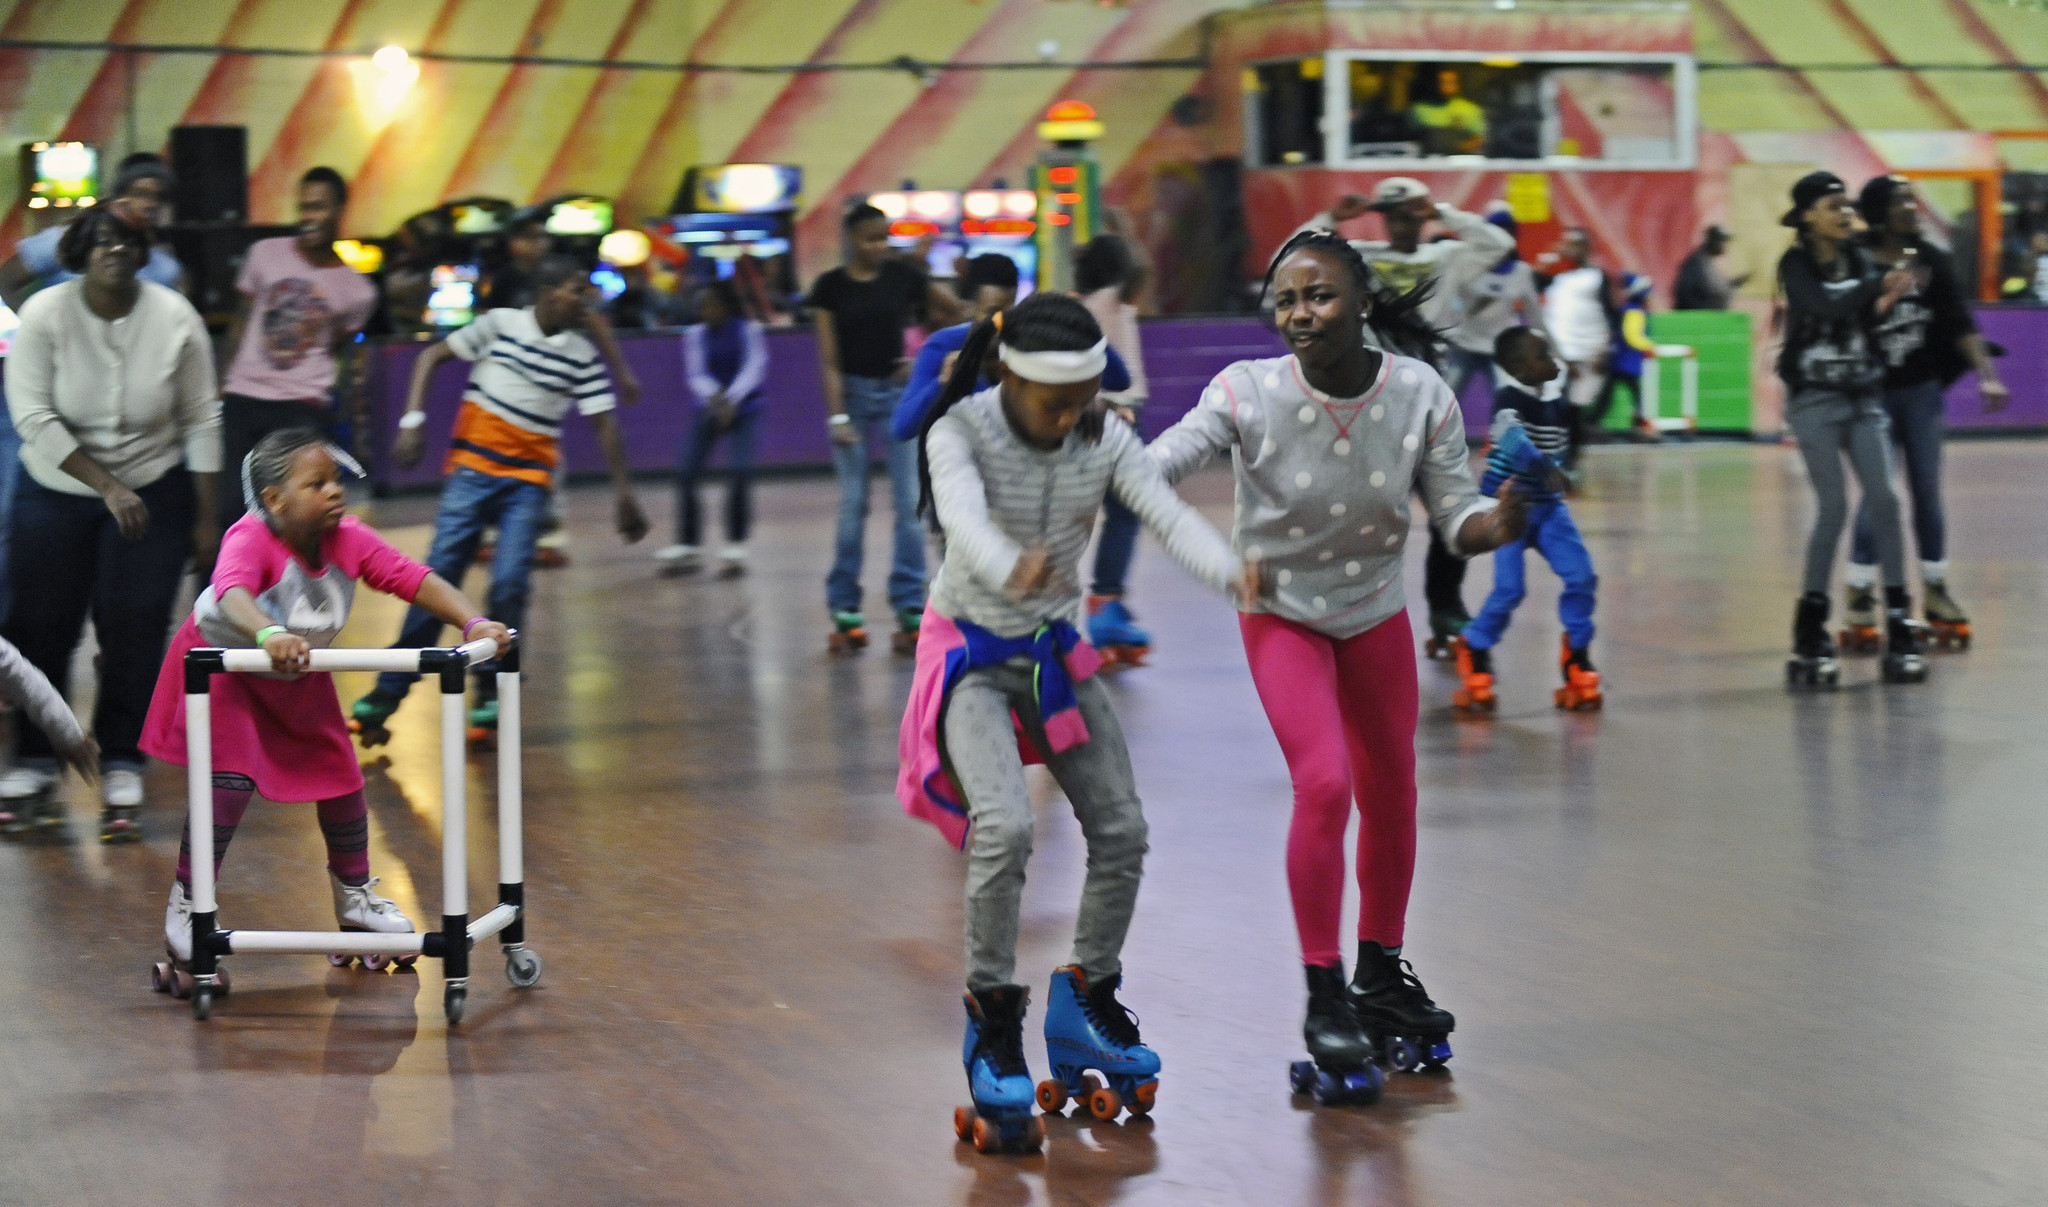 Roller skating rink in maryland - Ex Colt S Dream Lives On Shake And Bake Center Overcomes Financial Troubles To Serve Thousands Baltimore Sun